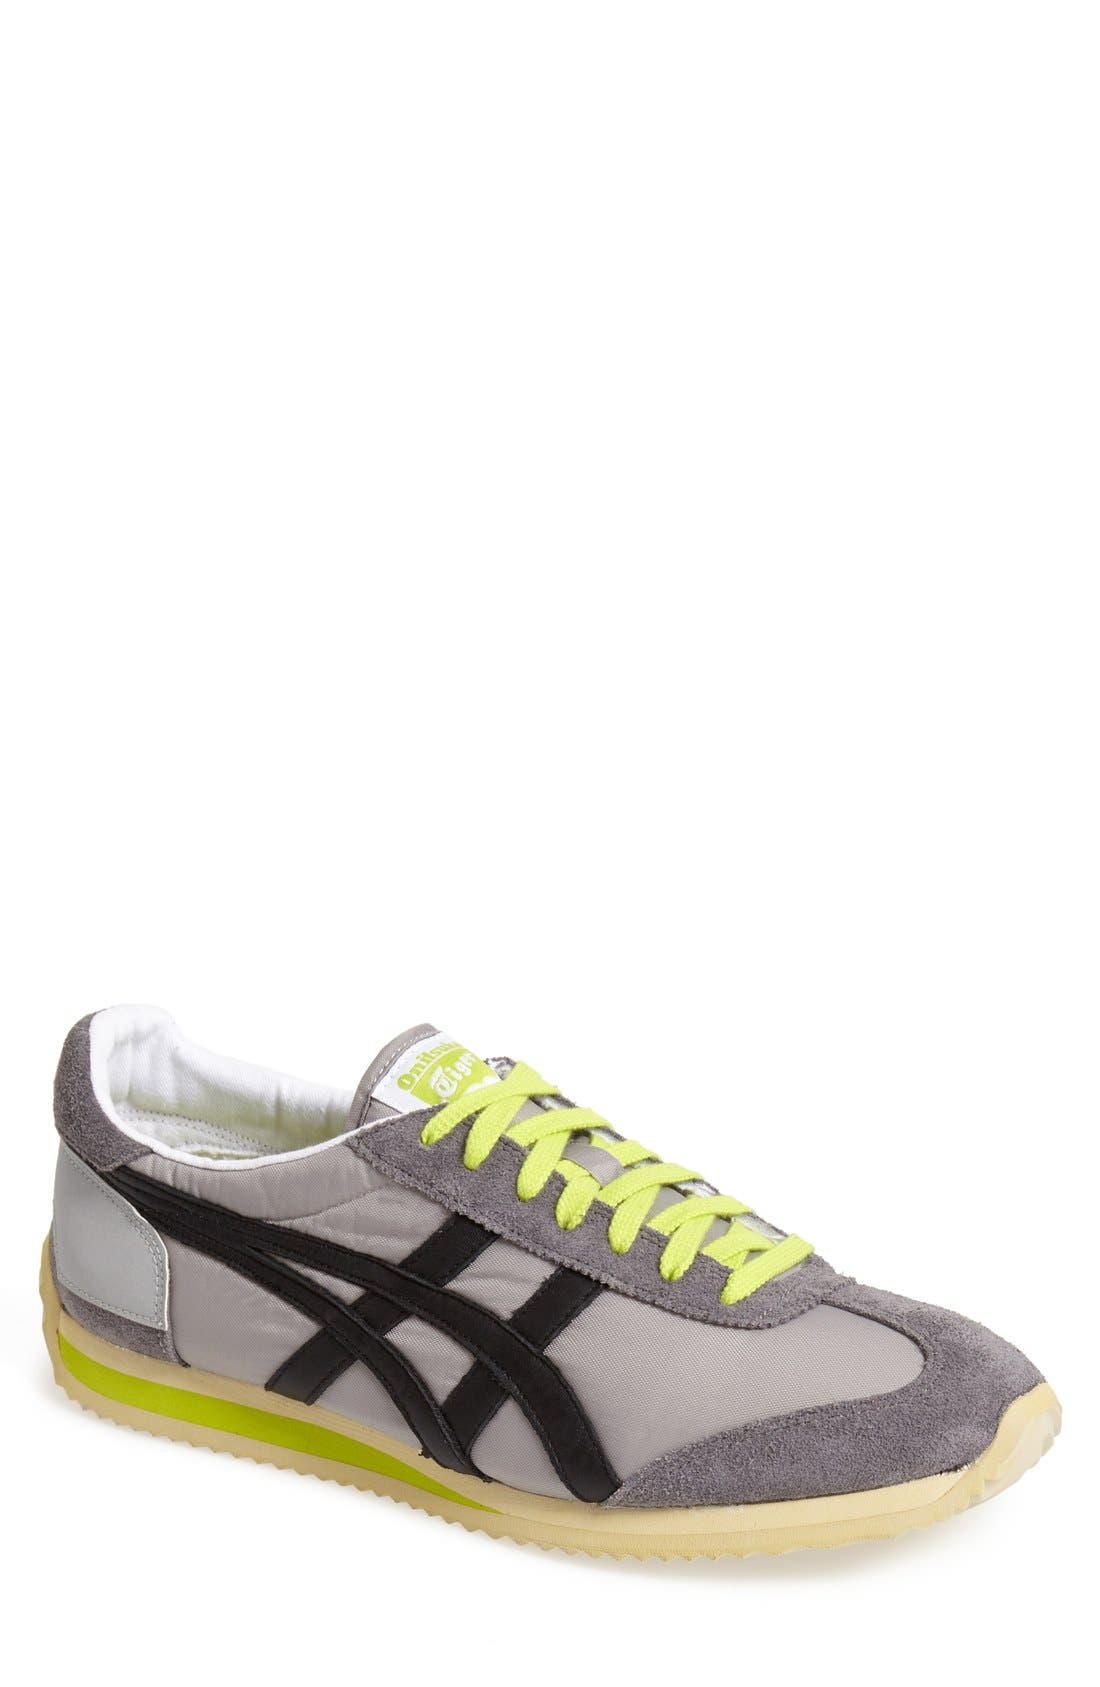 Alternate Image 1 Selected - Onitsuka Tiger™ 'California '78™ Vintage' Athletic Shoe